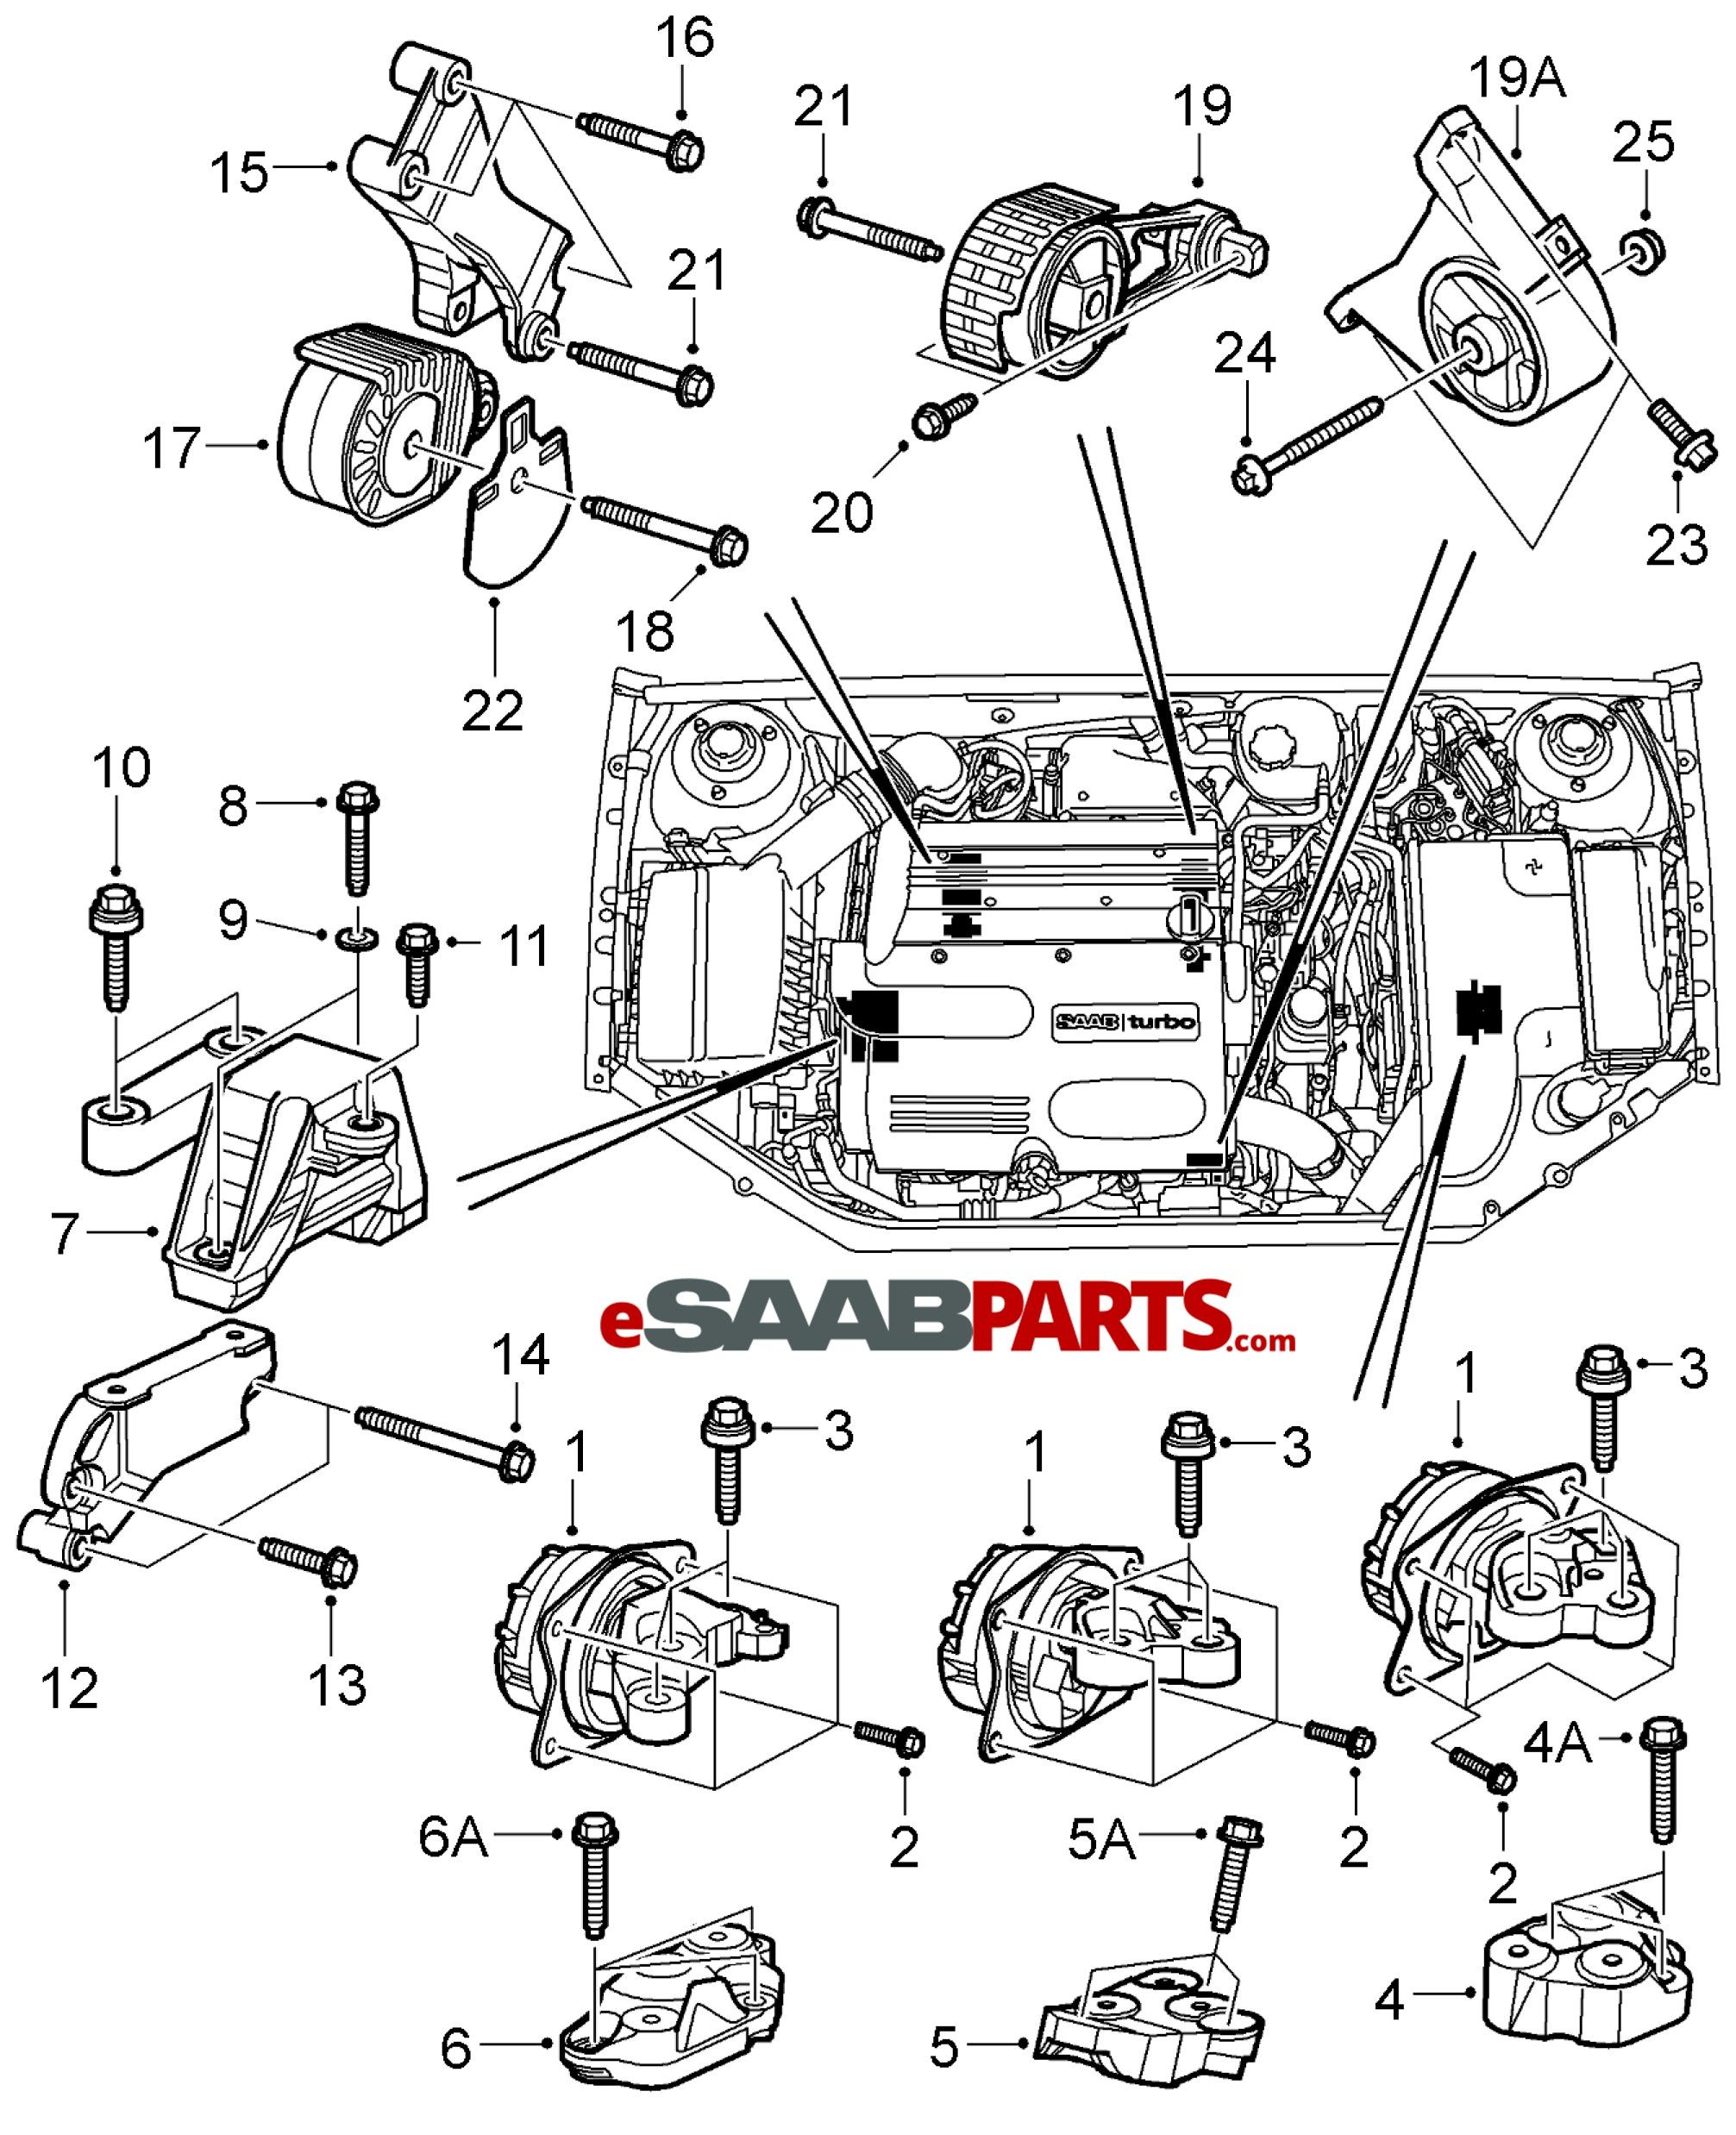 [How To Download] PDF and Read 2013 Kia Optima Wiring Diagram